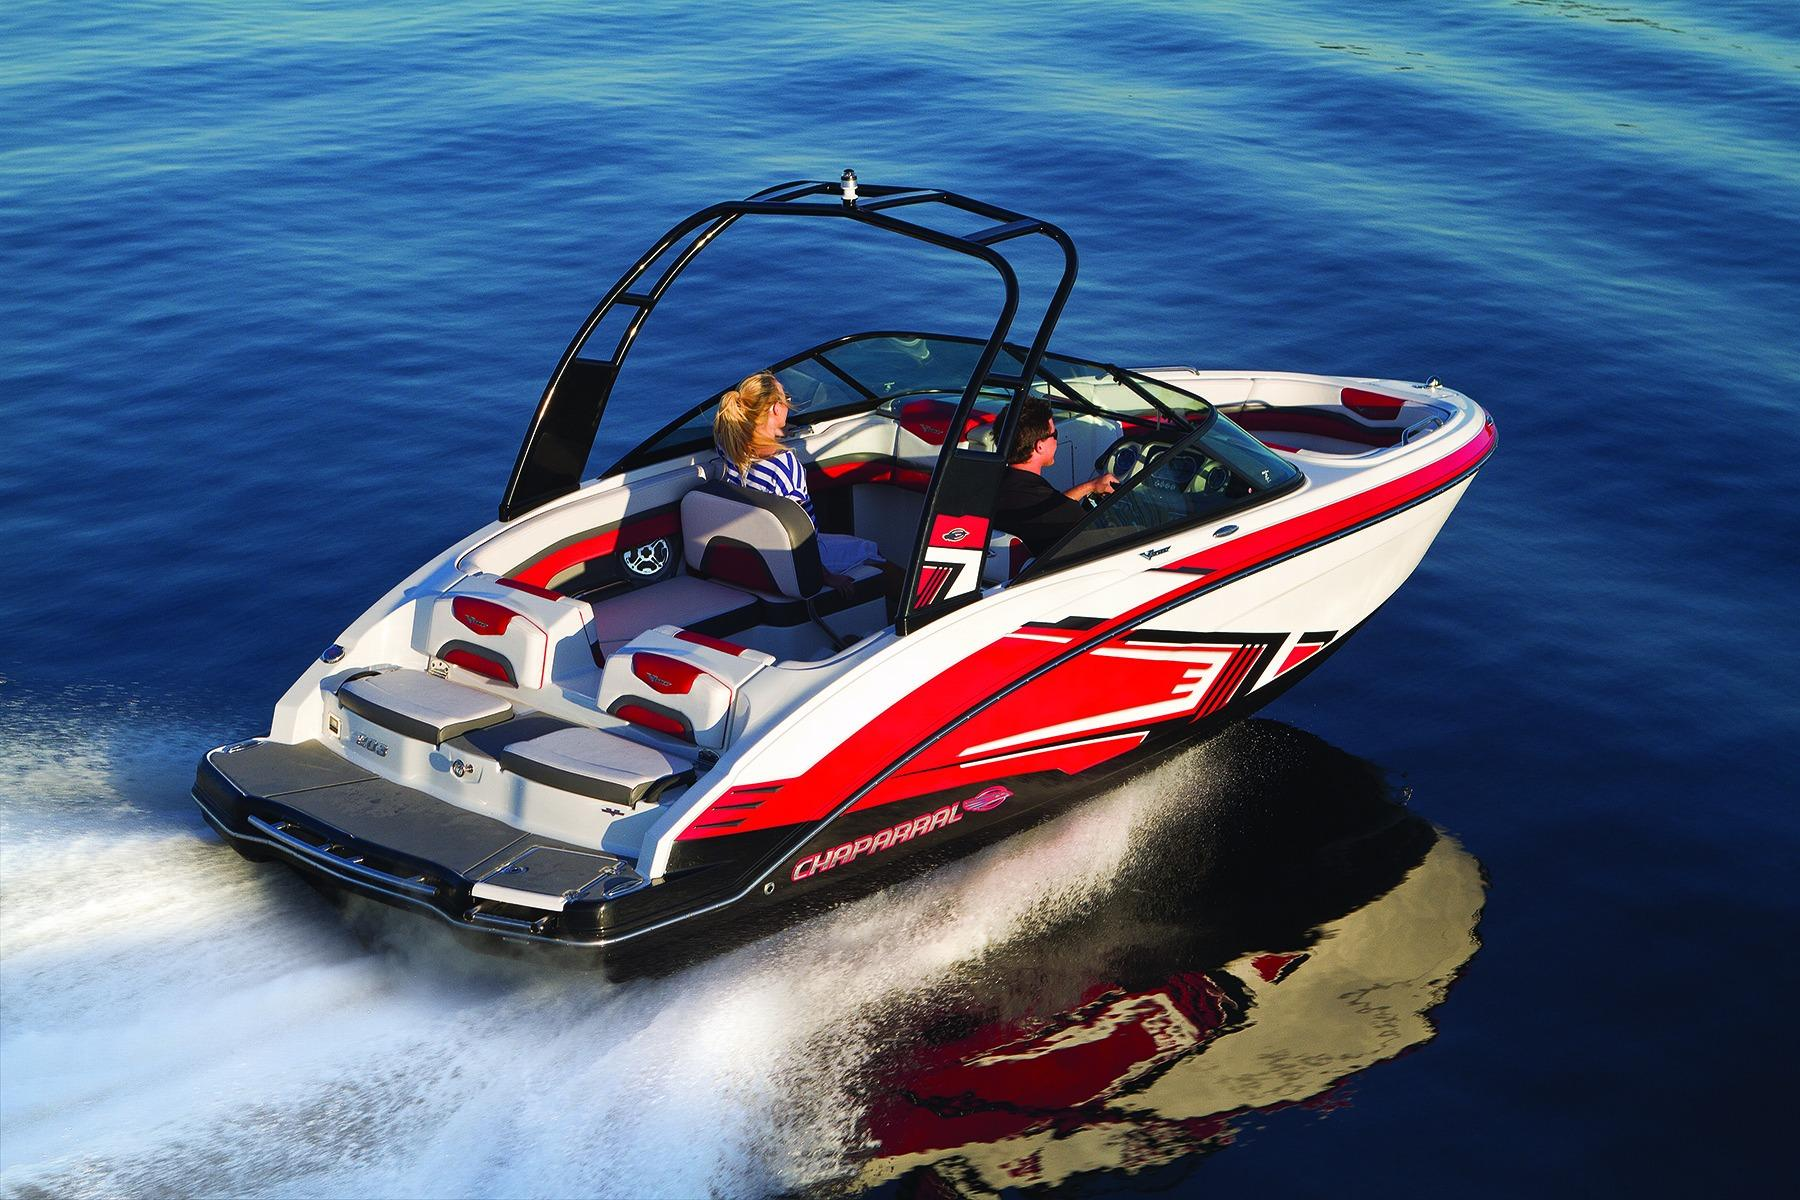 Williamstown (NJ) United States  city pictures gallery : 2015 Chaparral 203 Vortex VRX Power Boat For Sale www.yachtworld.com